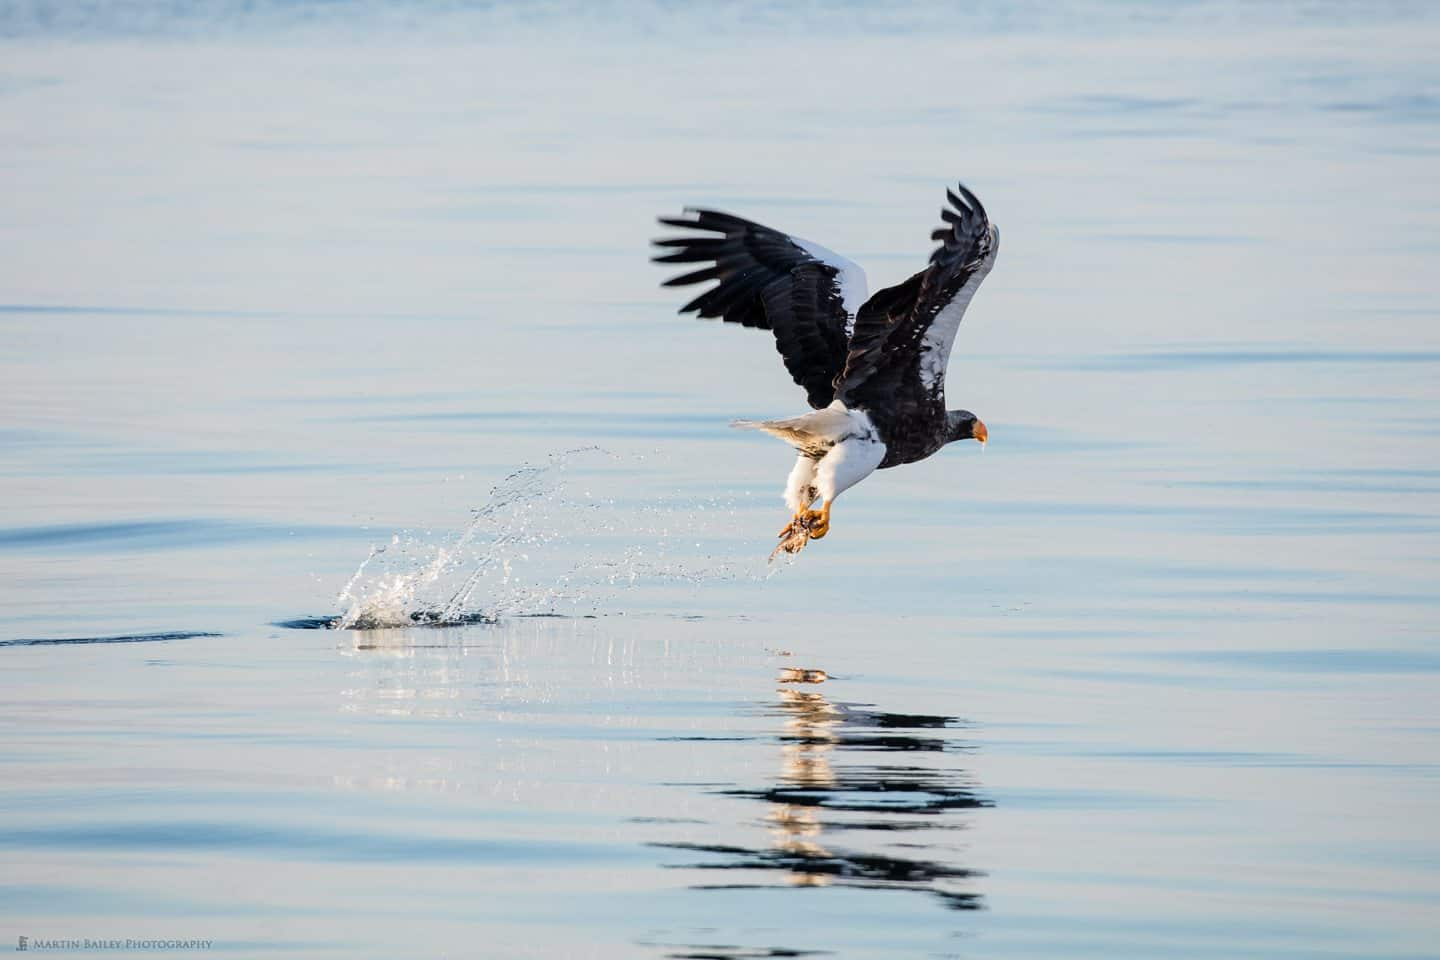 Steller's Sea Eagle Catching Fish from Calm Sea